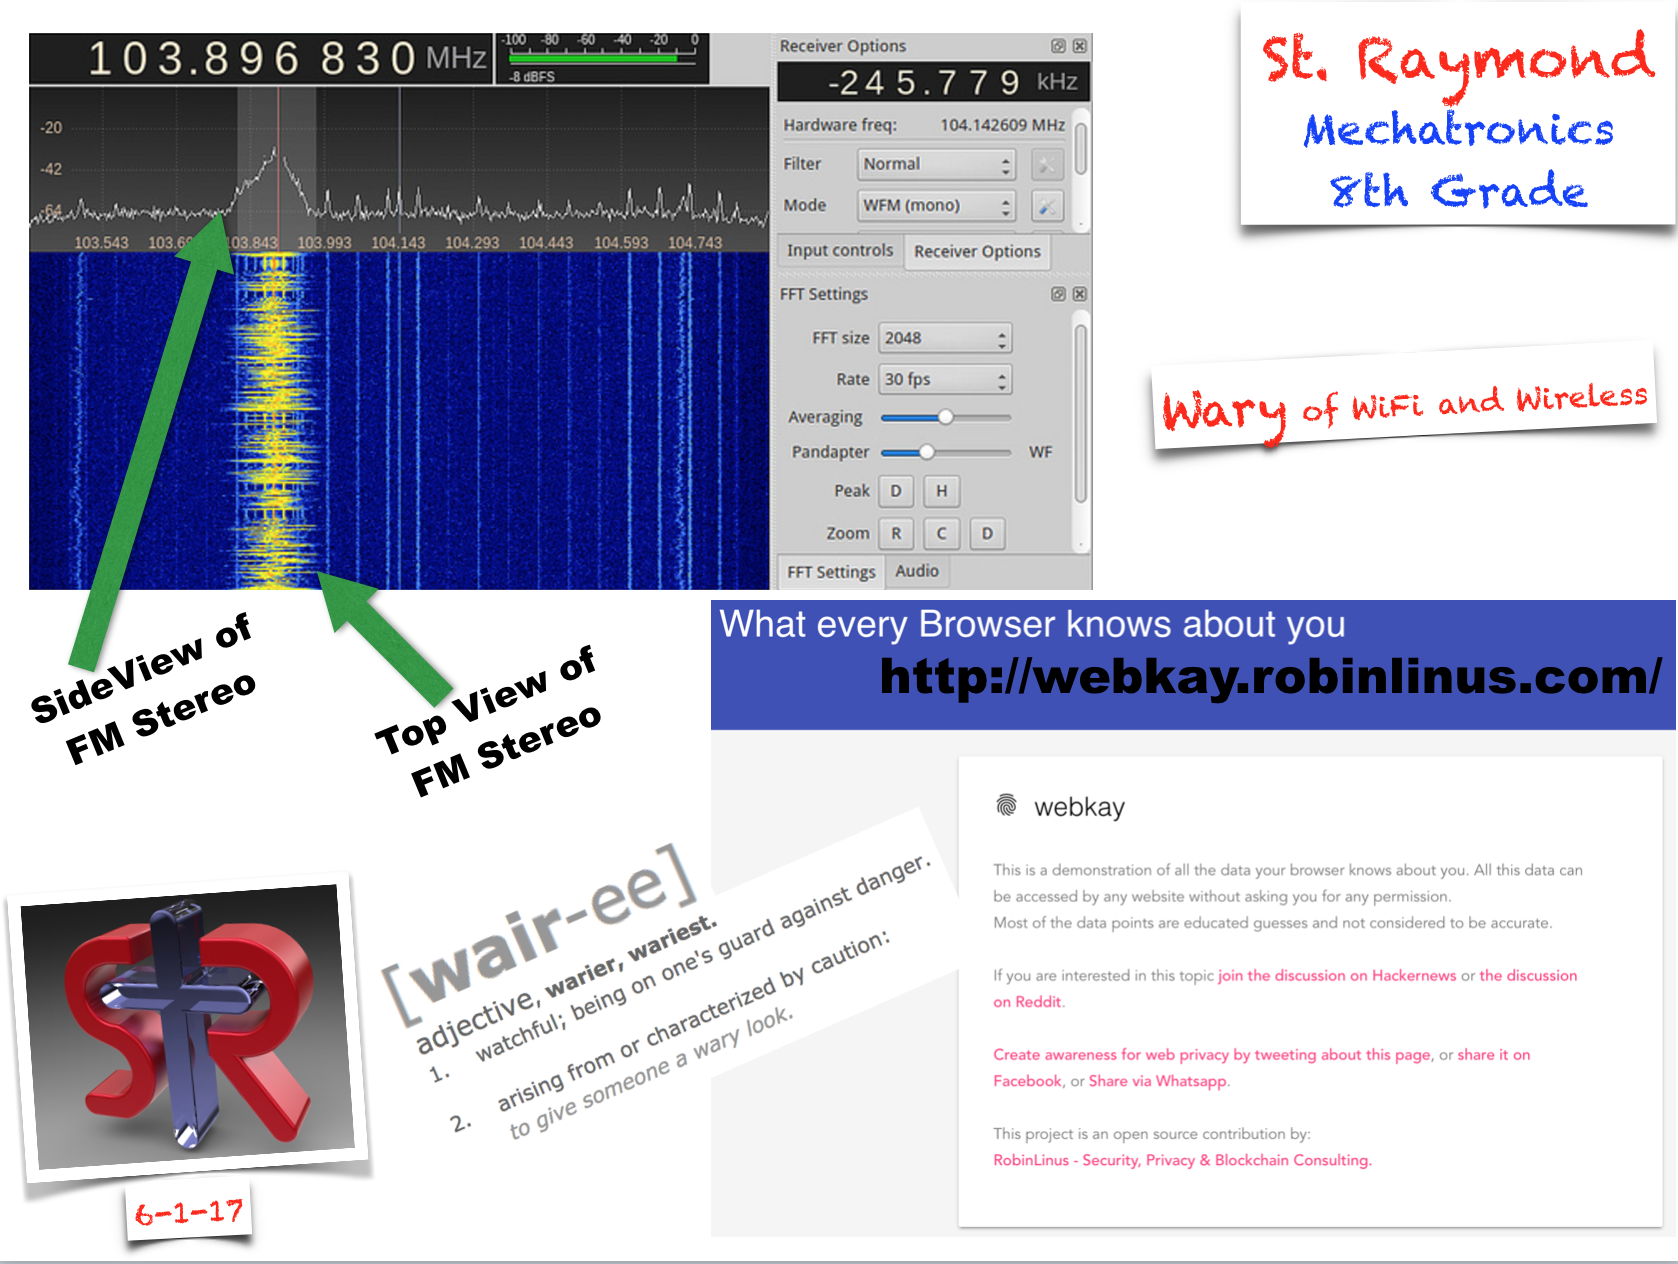 Upper Left: GQRX Scanning Software that 8th graders used today. Lower Right: See what any website sees when you visit it.